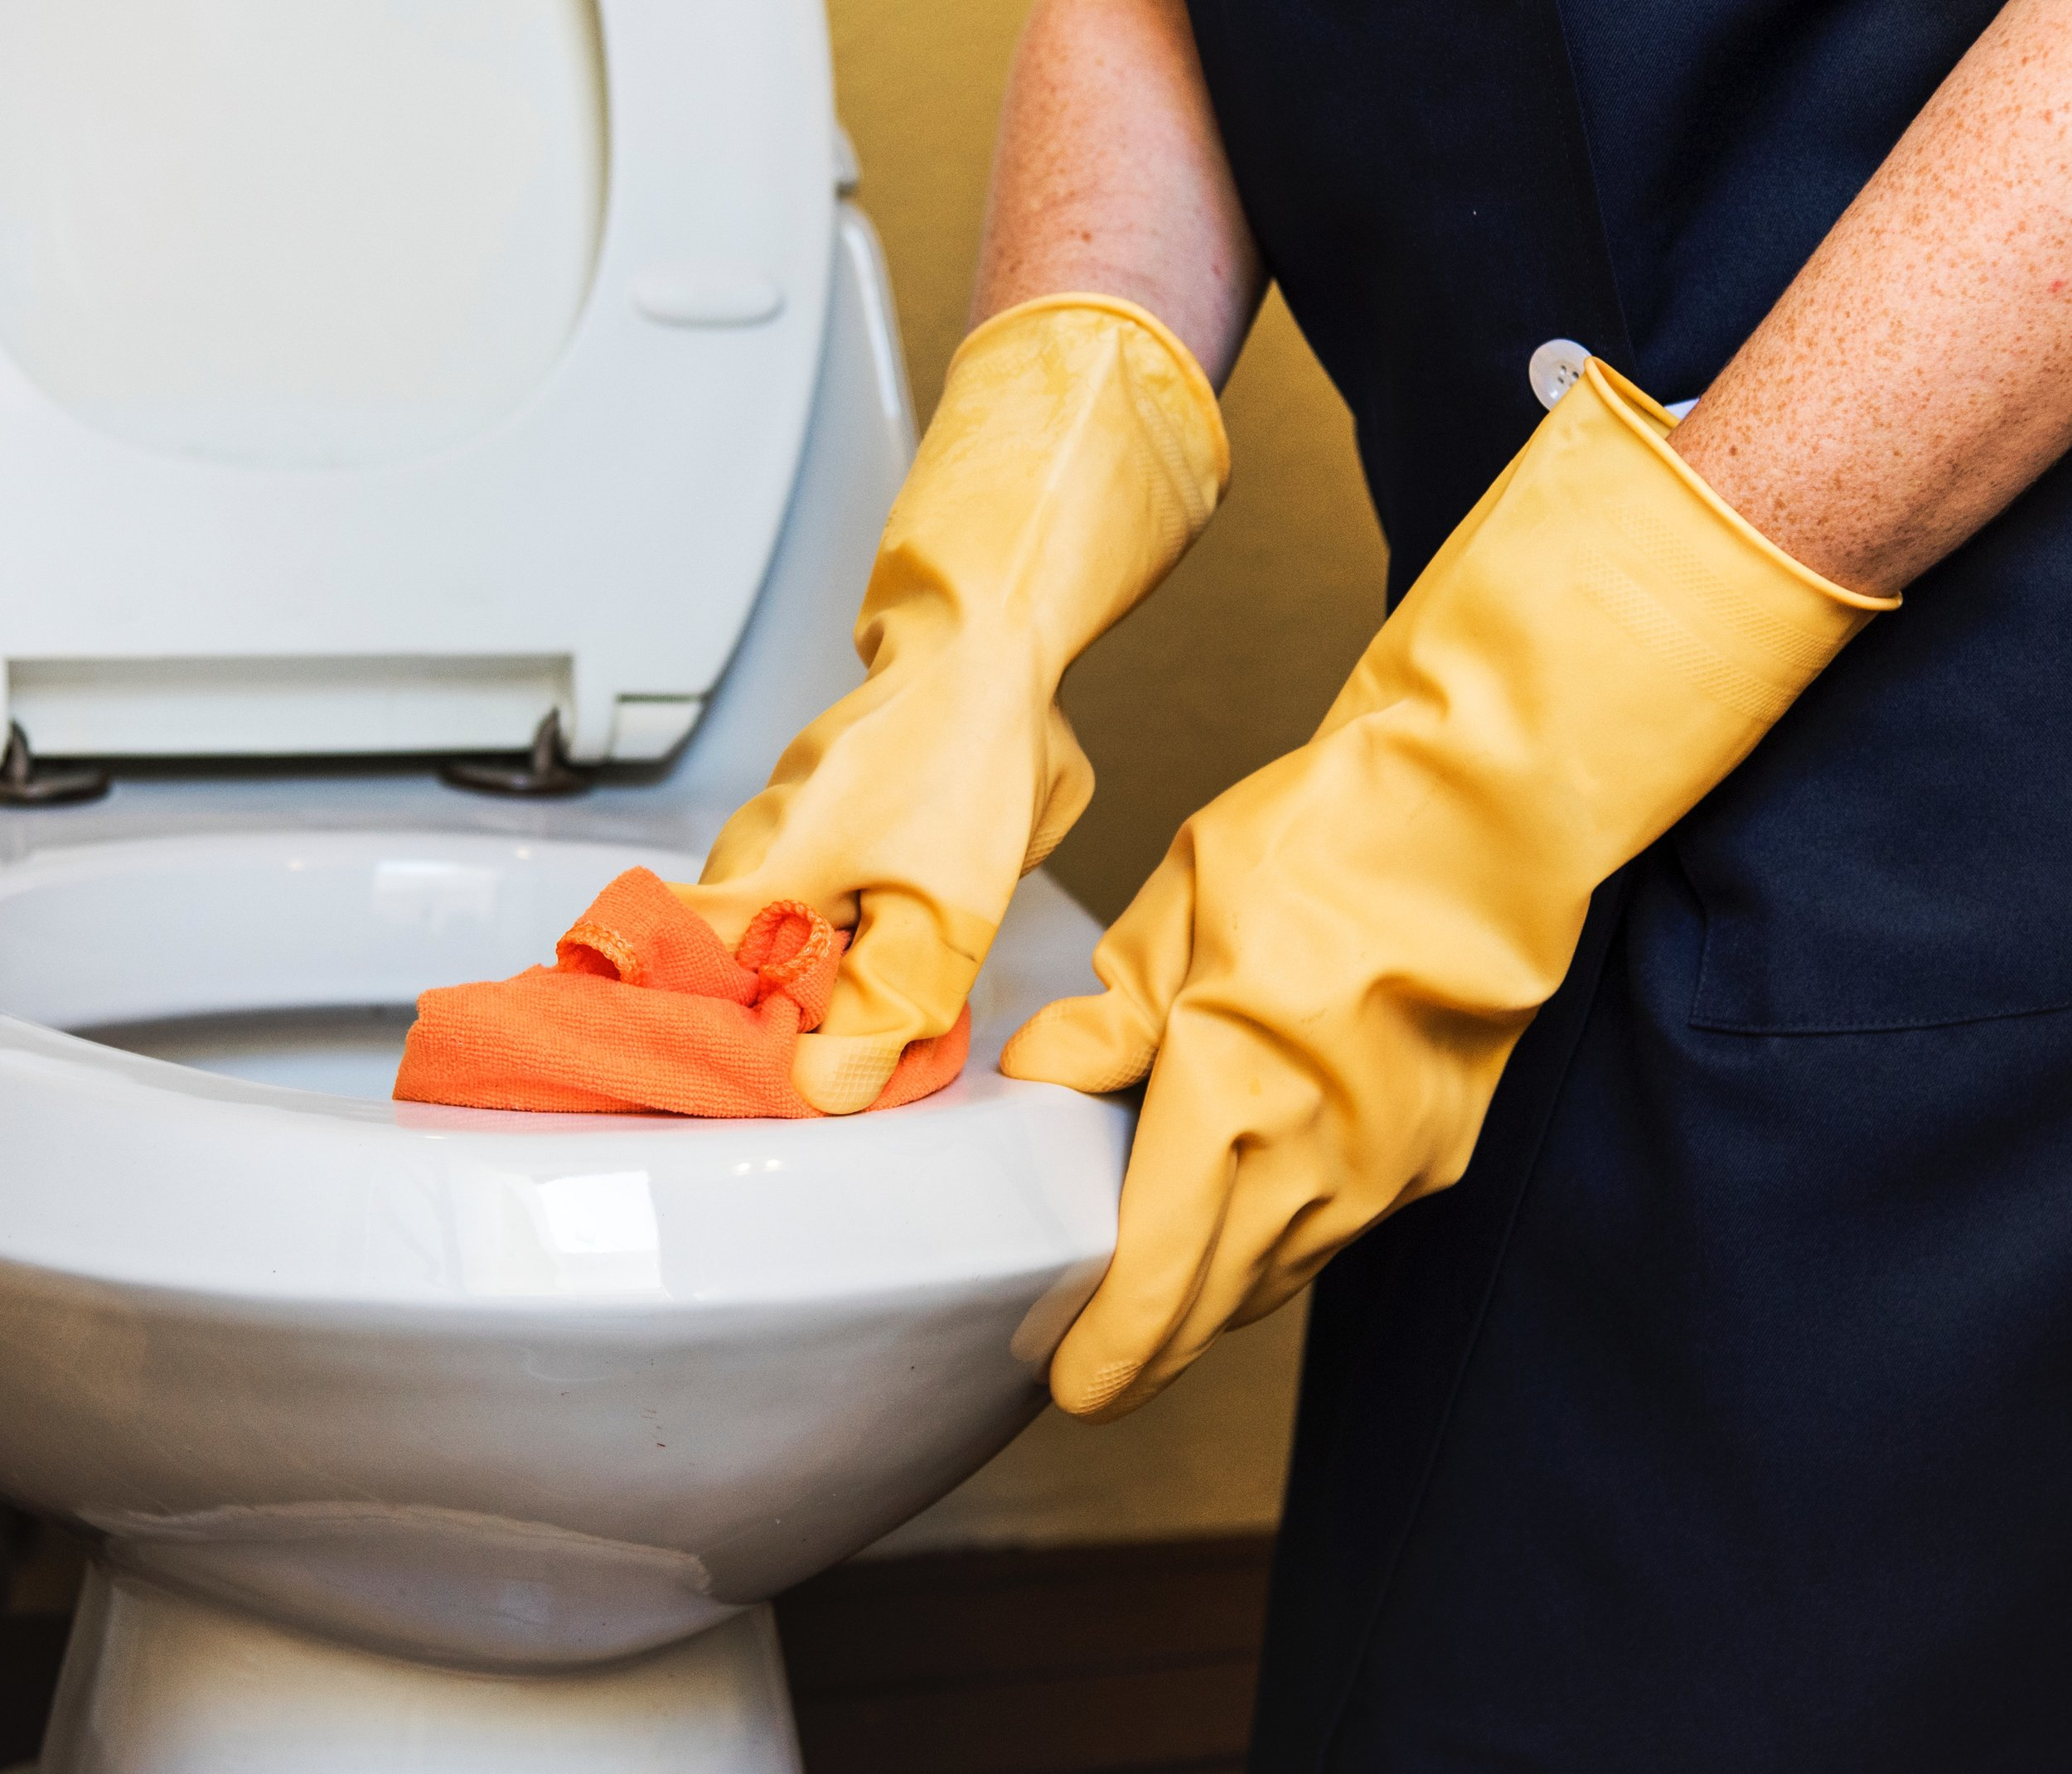 Someone cleans a toilet